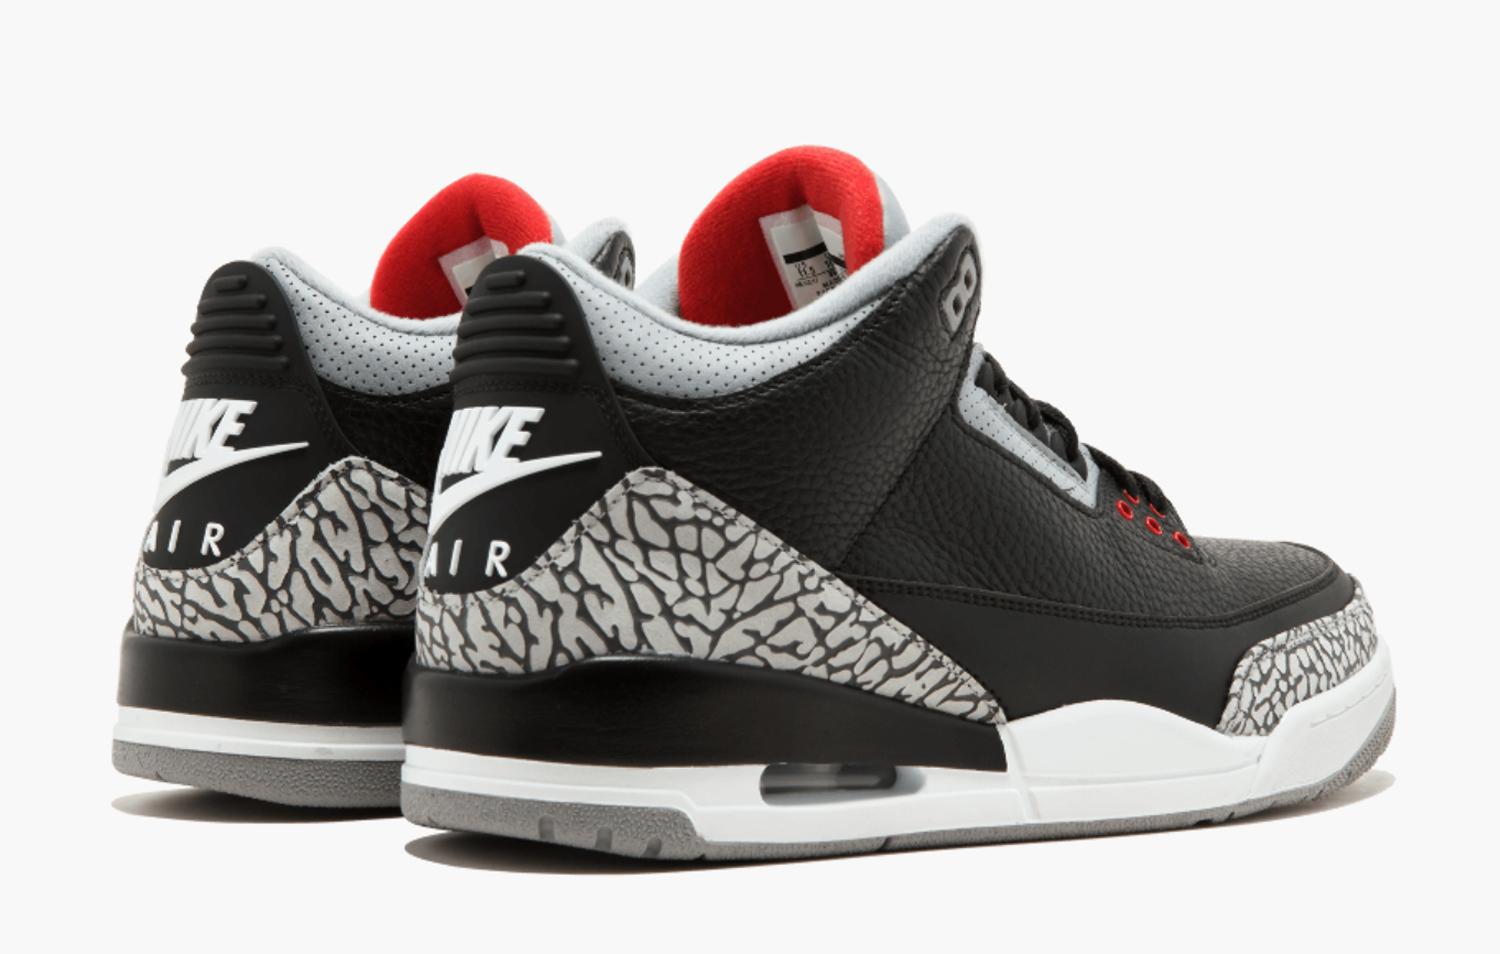 on sale da27f ad68d A First Look at the Air Jordan 3 'Black Cement' Retro for ...